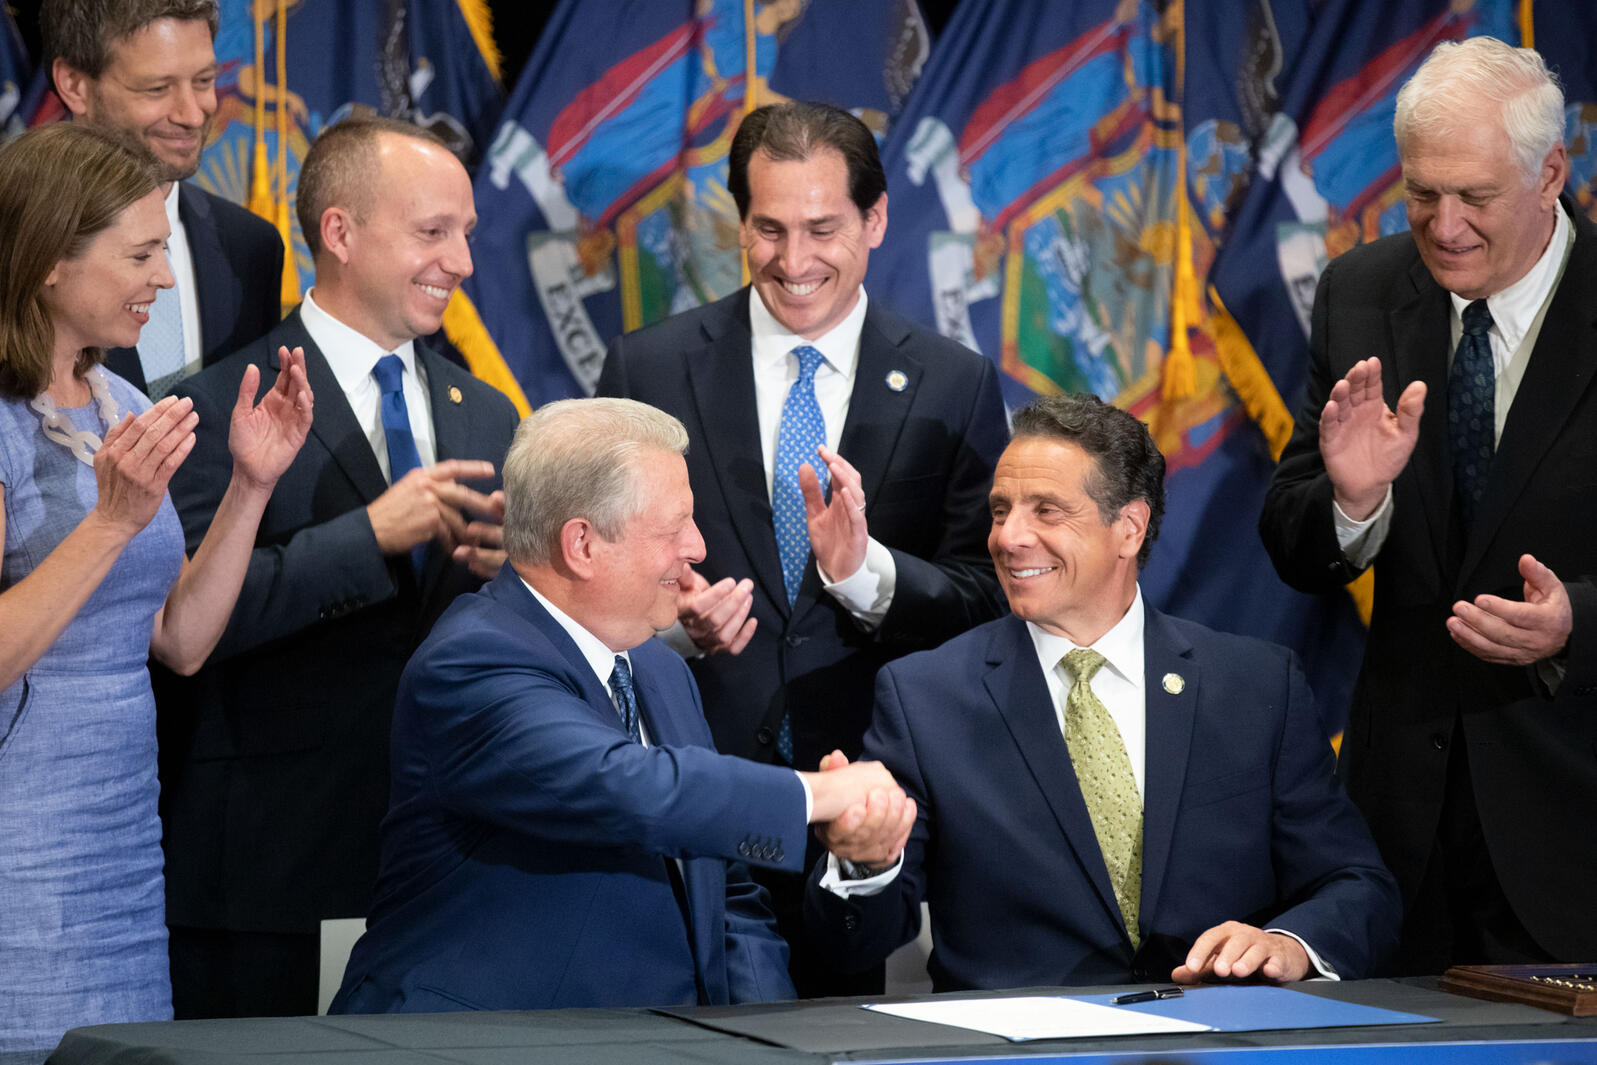 Former Vice President Al Gore, left, shakes New York Governor Andrew Cuomo's hand after Cuomo signed the Climate Leadership and Community Protection Act at Fordham Law School July 18, 2019 in Manhattan, New York. Luke Franke/Audubon